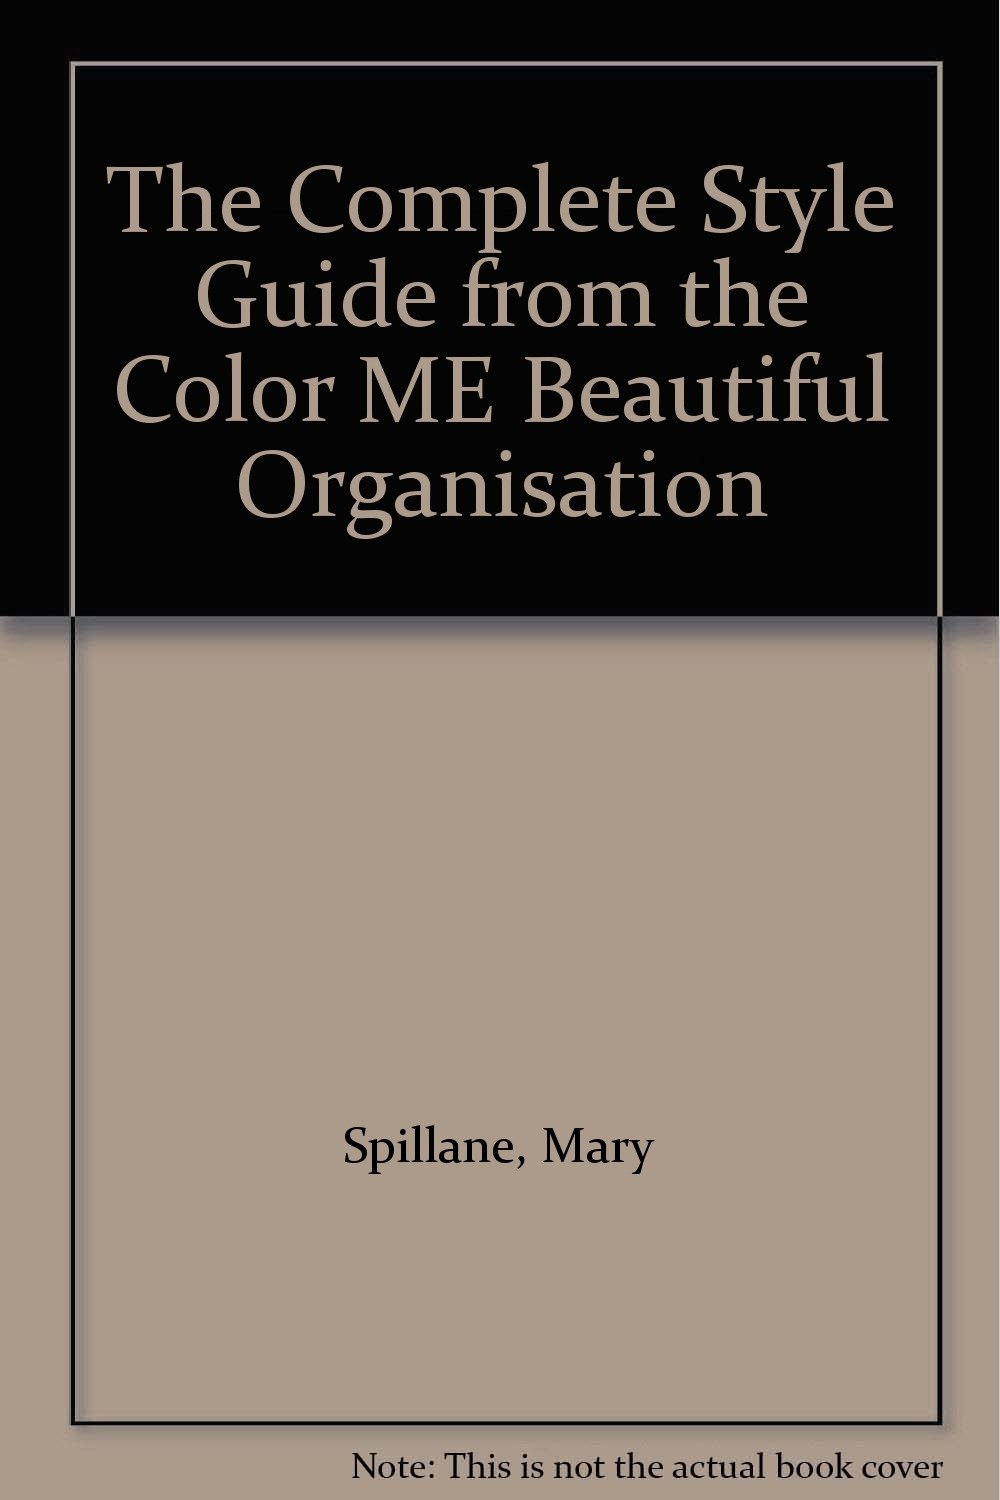 book color me beautiful : The Complete Style Guide From The Color Me Beautiful Organisation Mary Spillane 9780207173868 Amazon Com Books